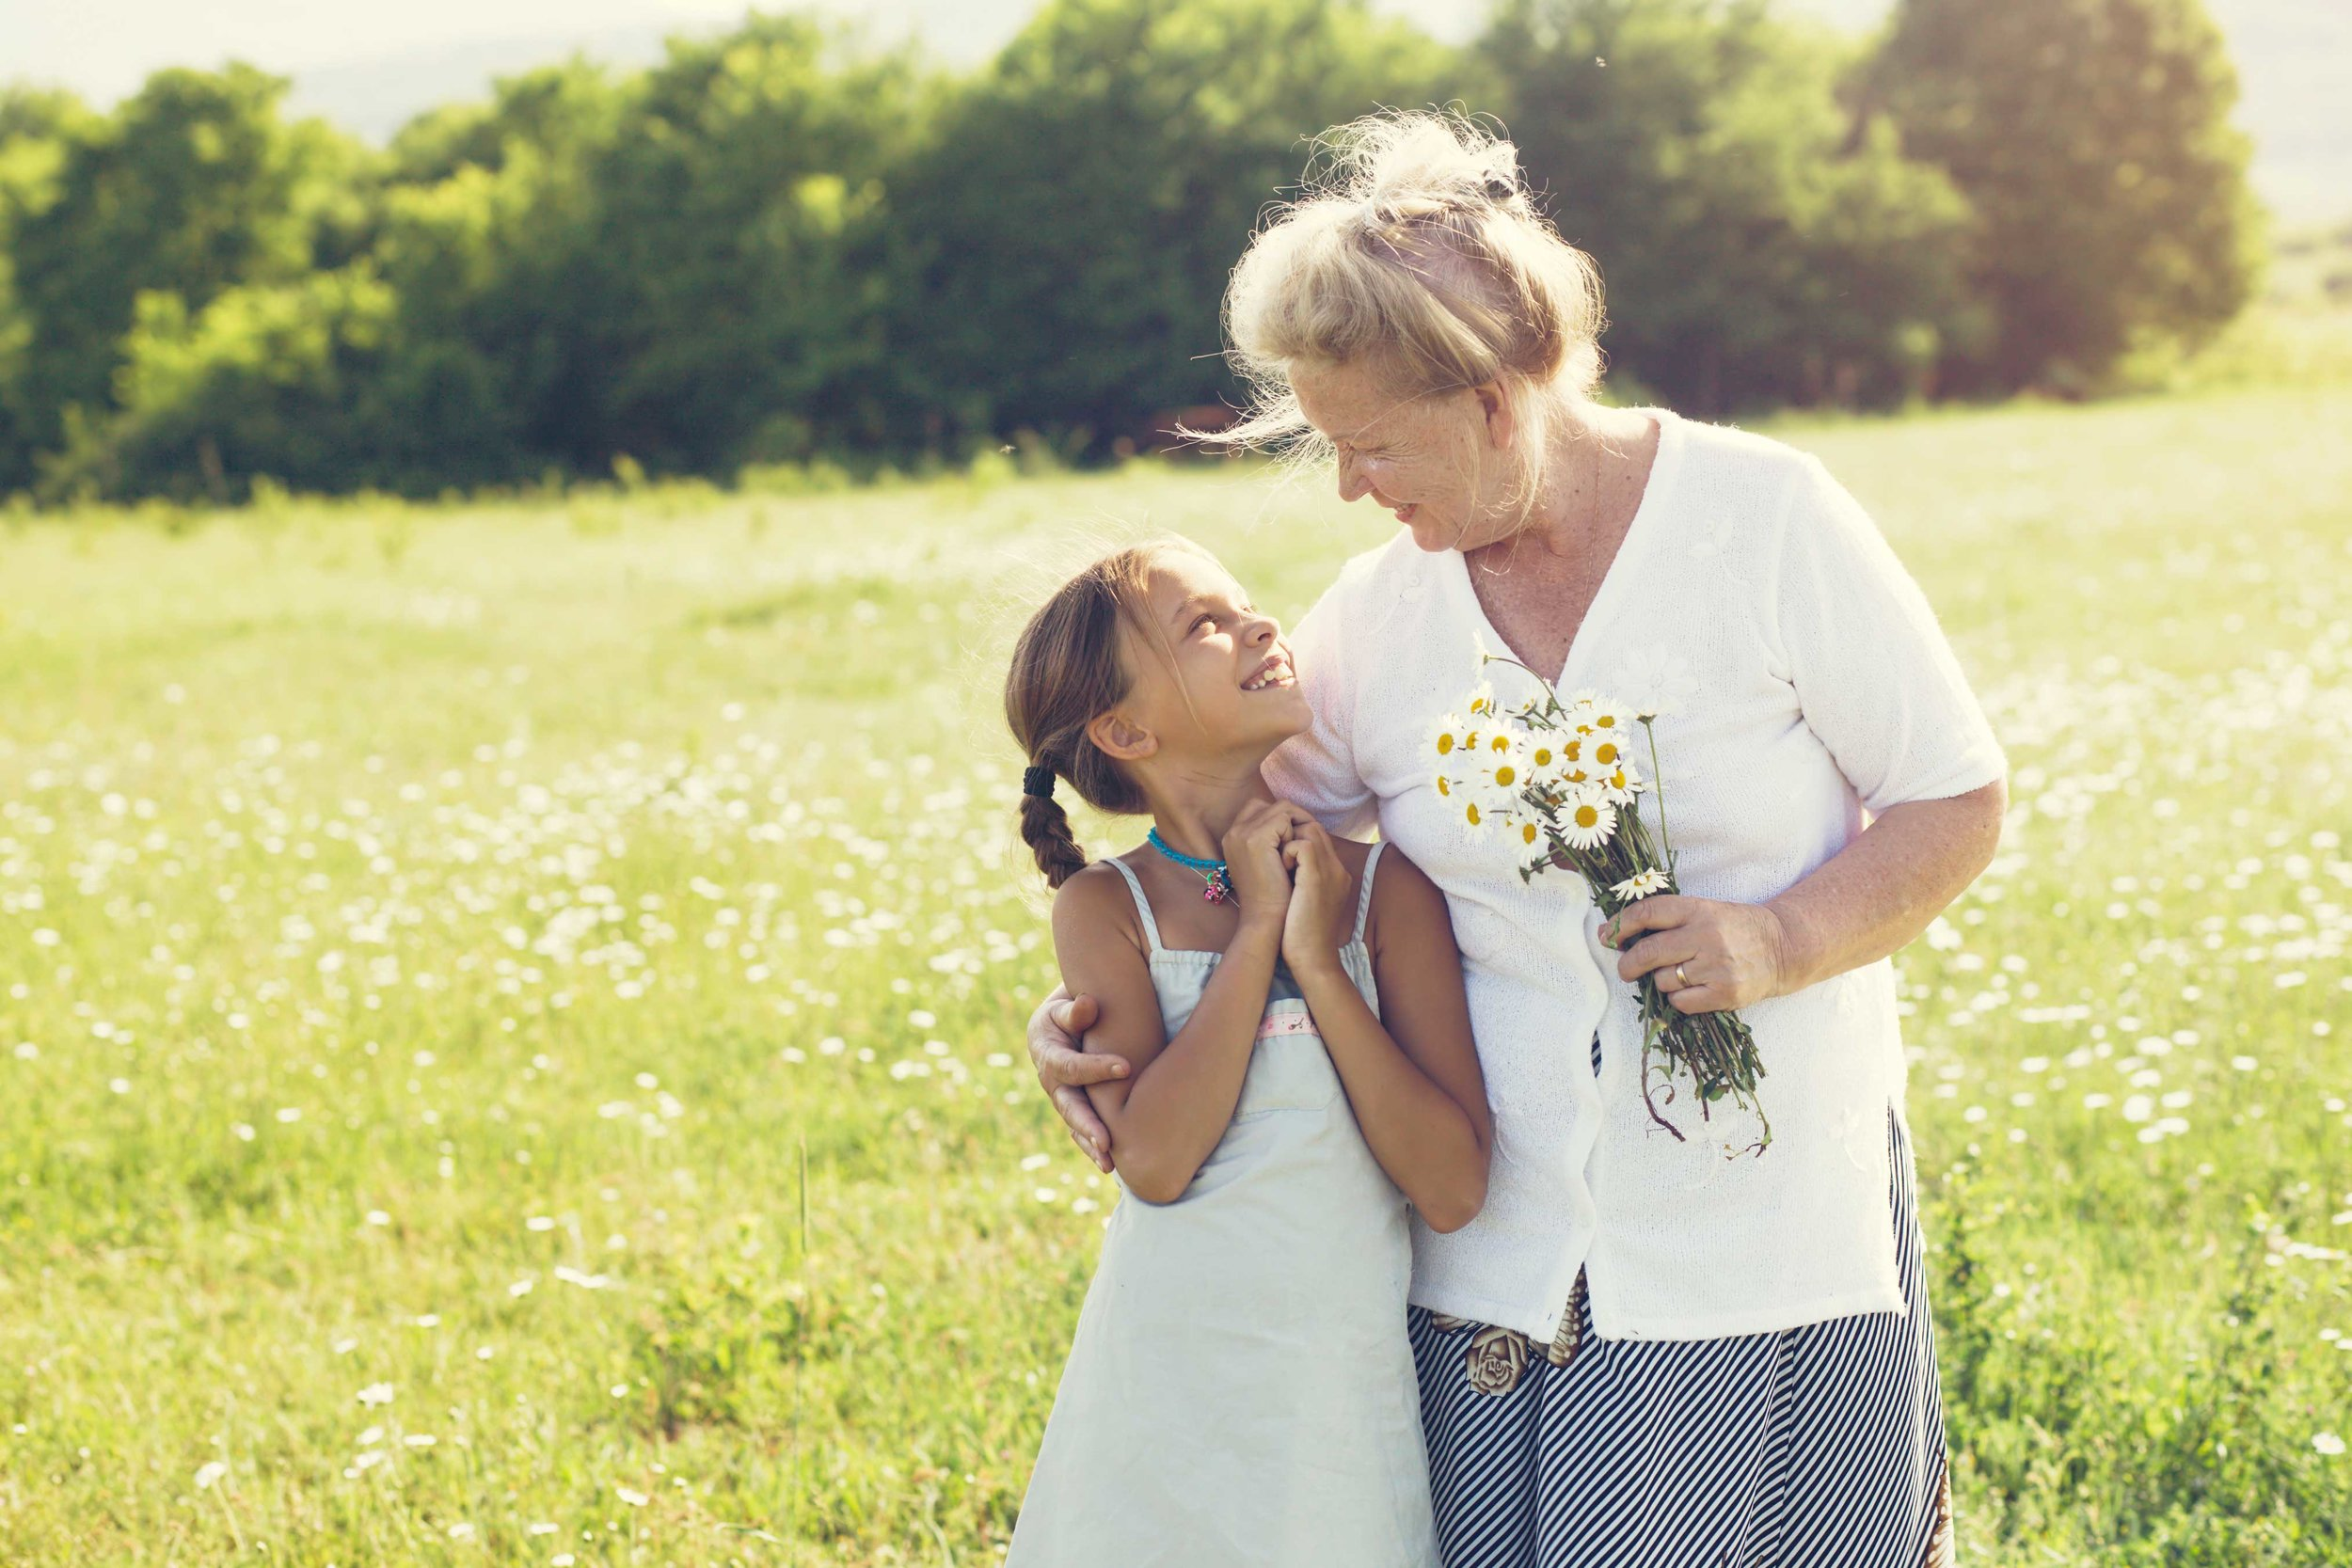 stock-photo-great-grandmother-and-granddaughter-standing-in-flower-field-in-sunlight-285328910_Med.jpg